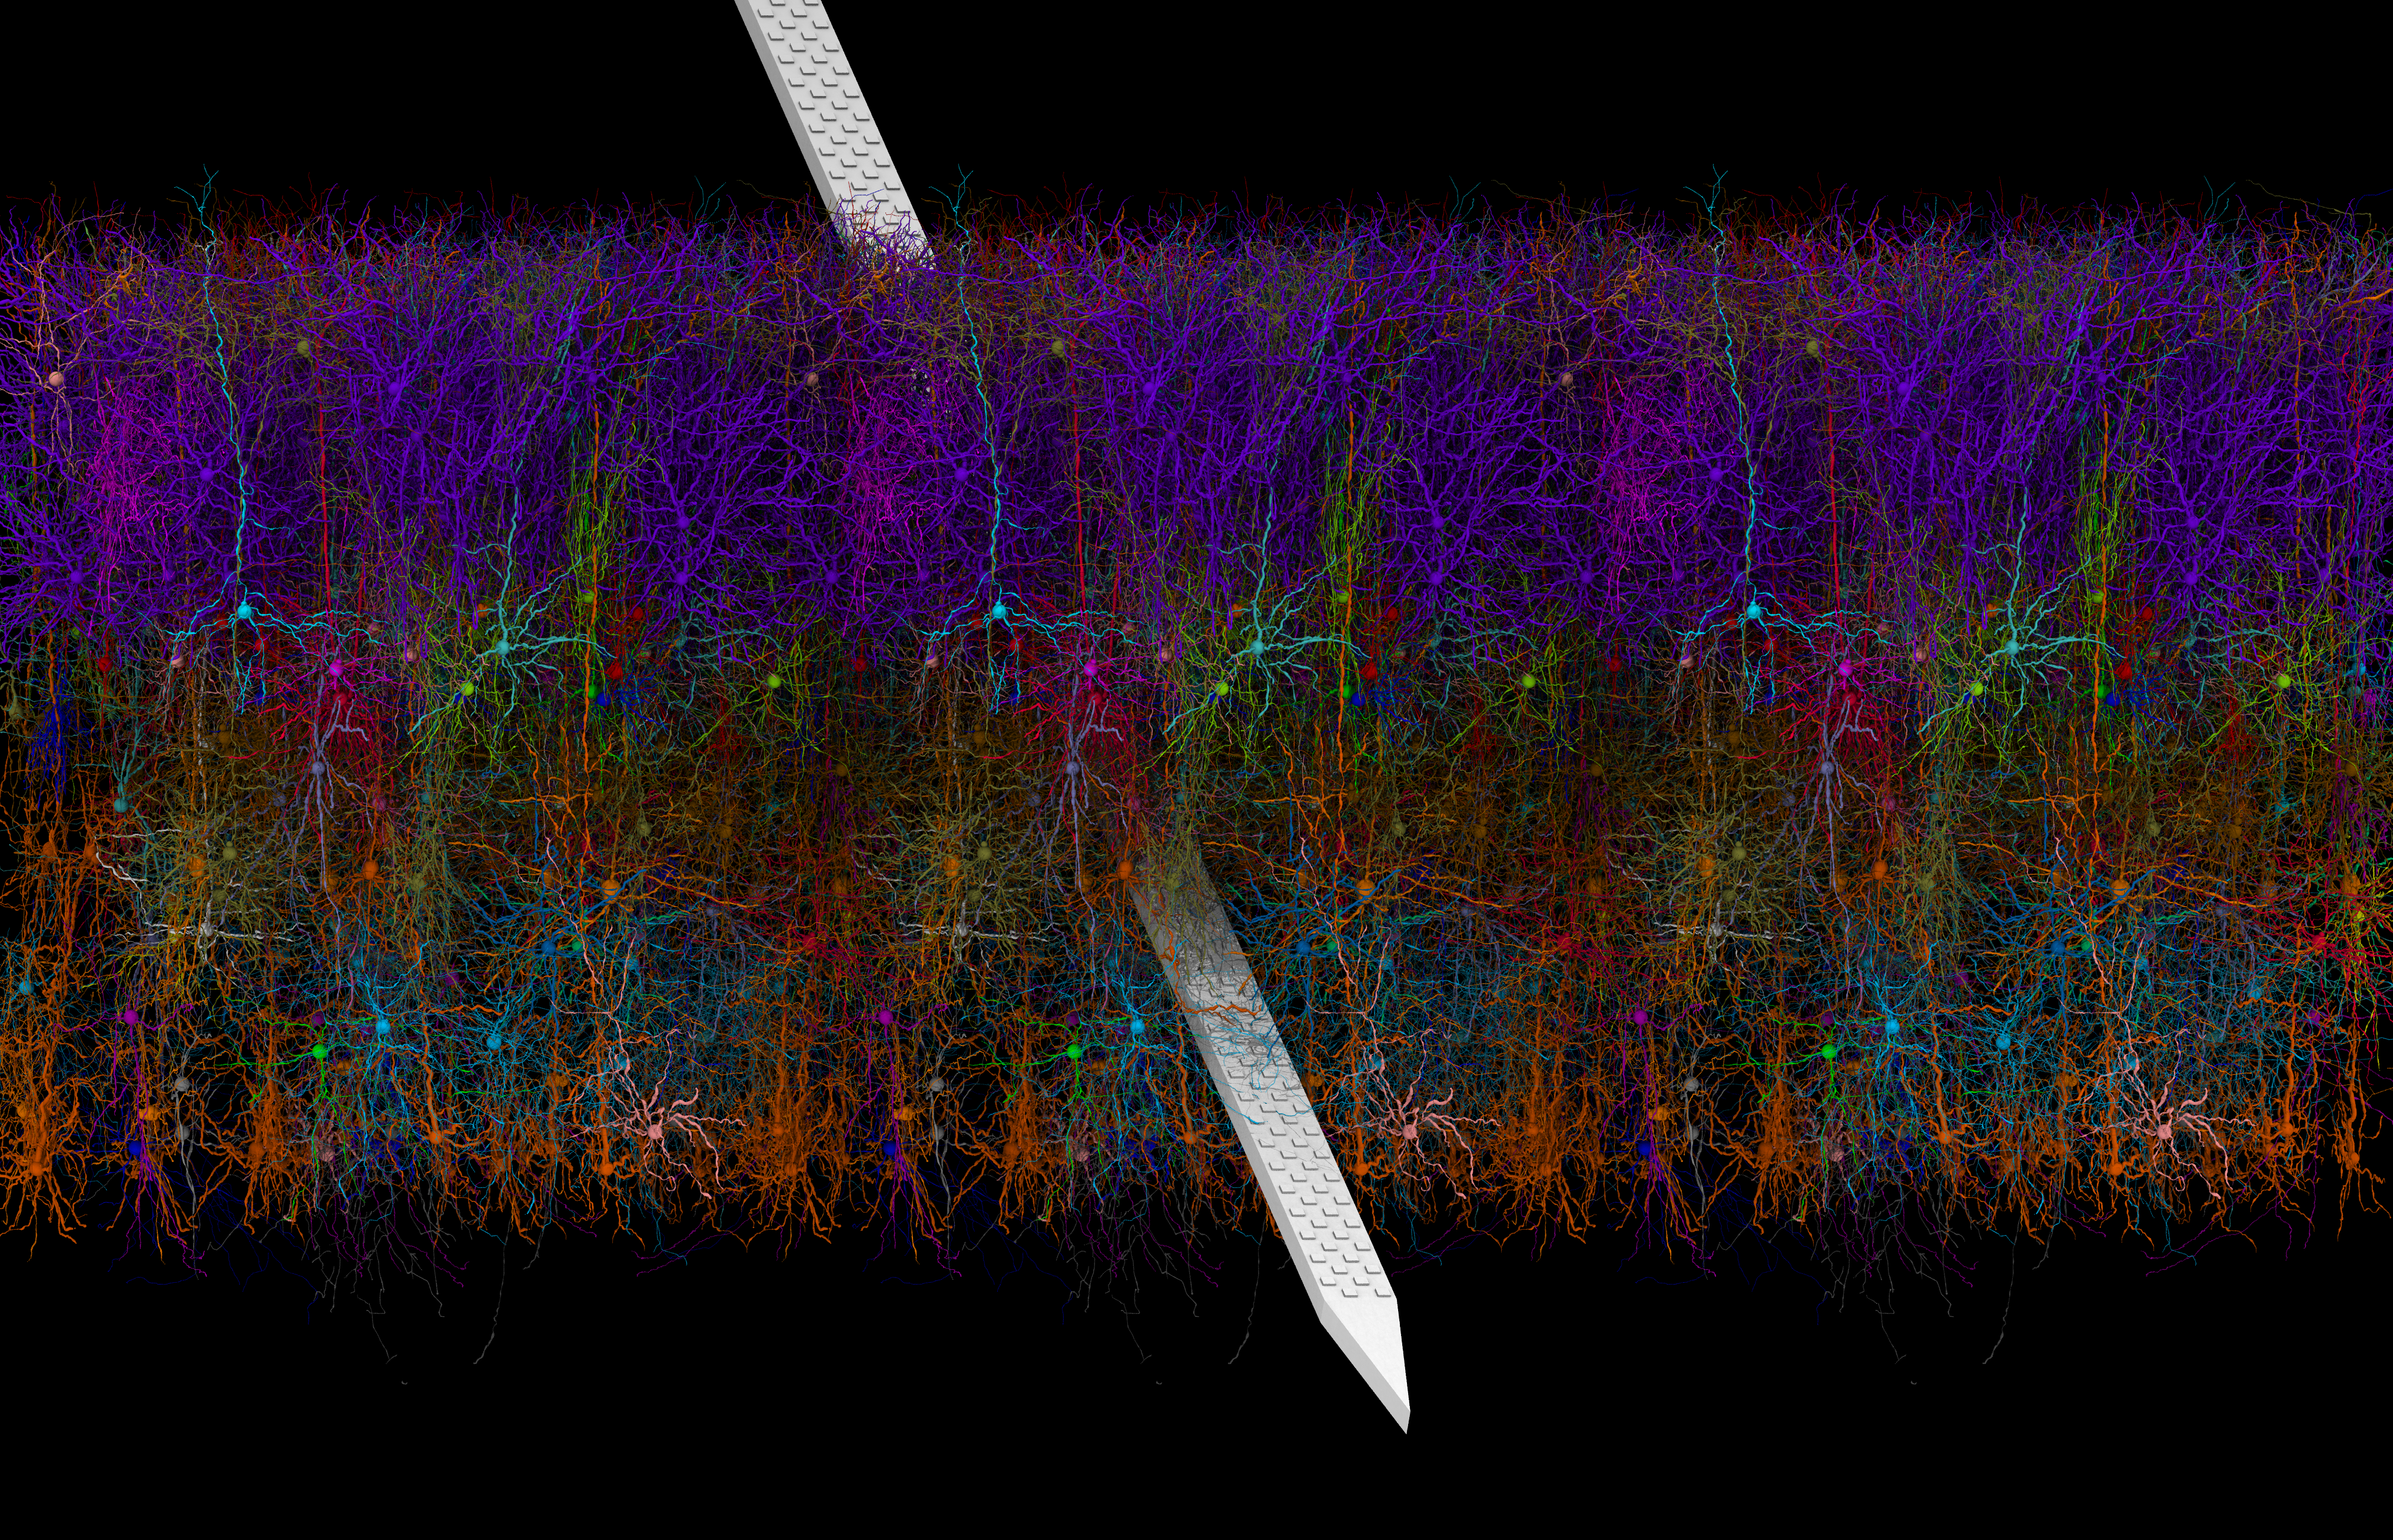 Image depicts a biorealistic, 3D visualization of the primary visual cortex in a mouse brain using Visual Neuronal Dynamics software.